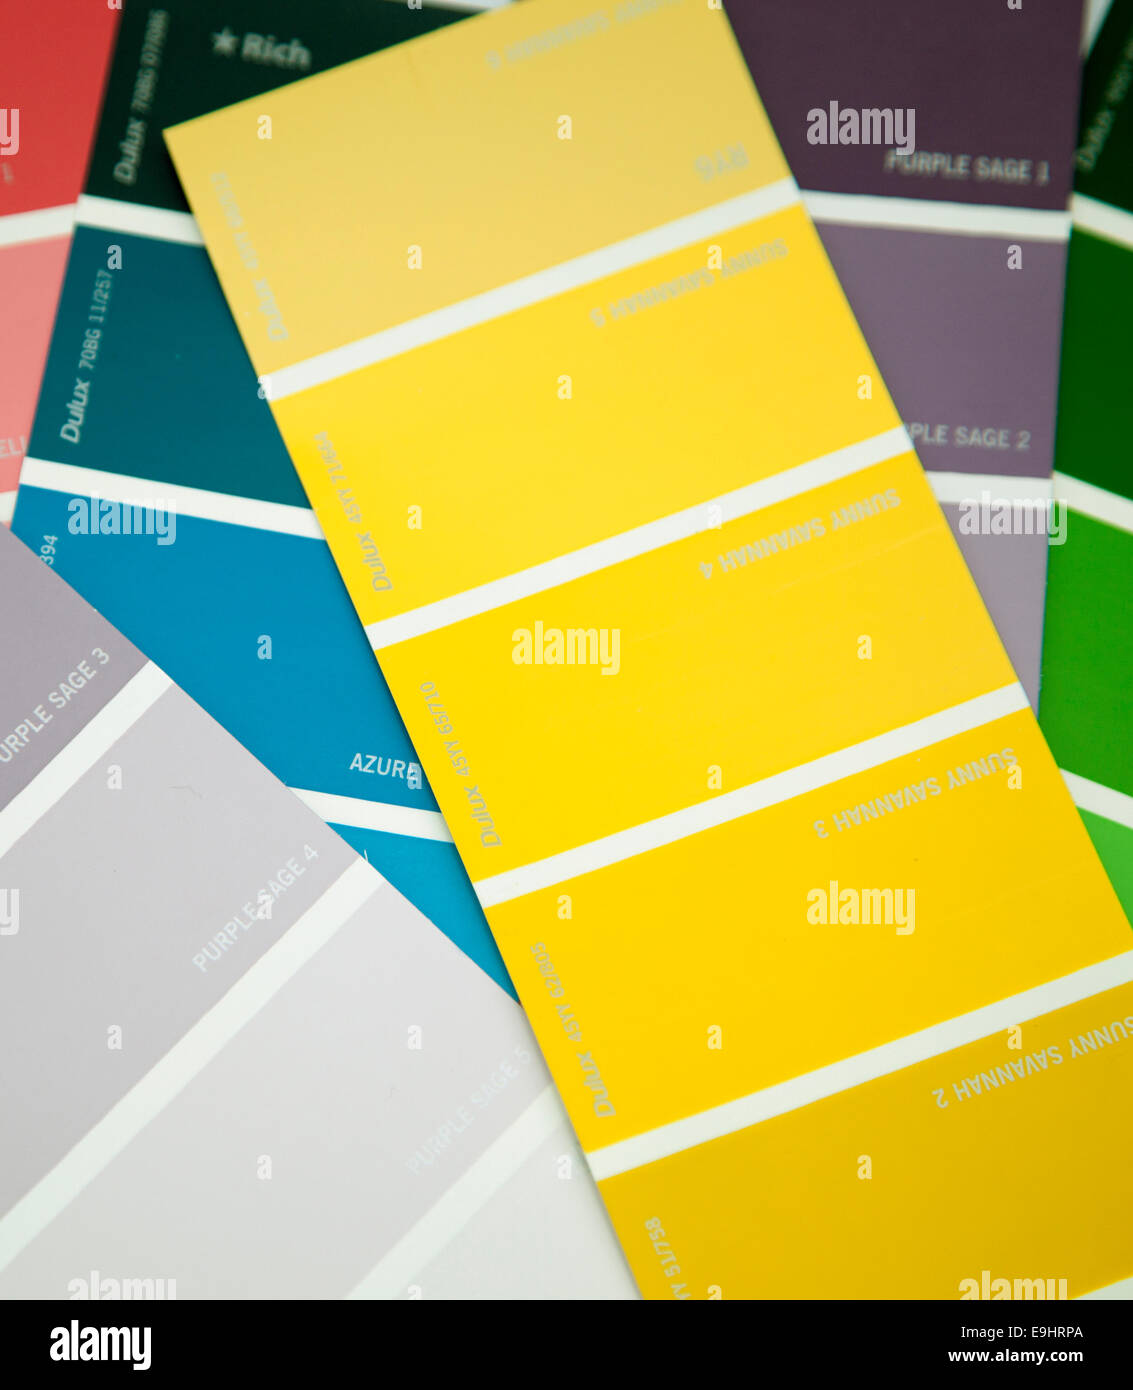 Dulux Paint Stock Photos & Dulux Paint Stock Images - Alamy